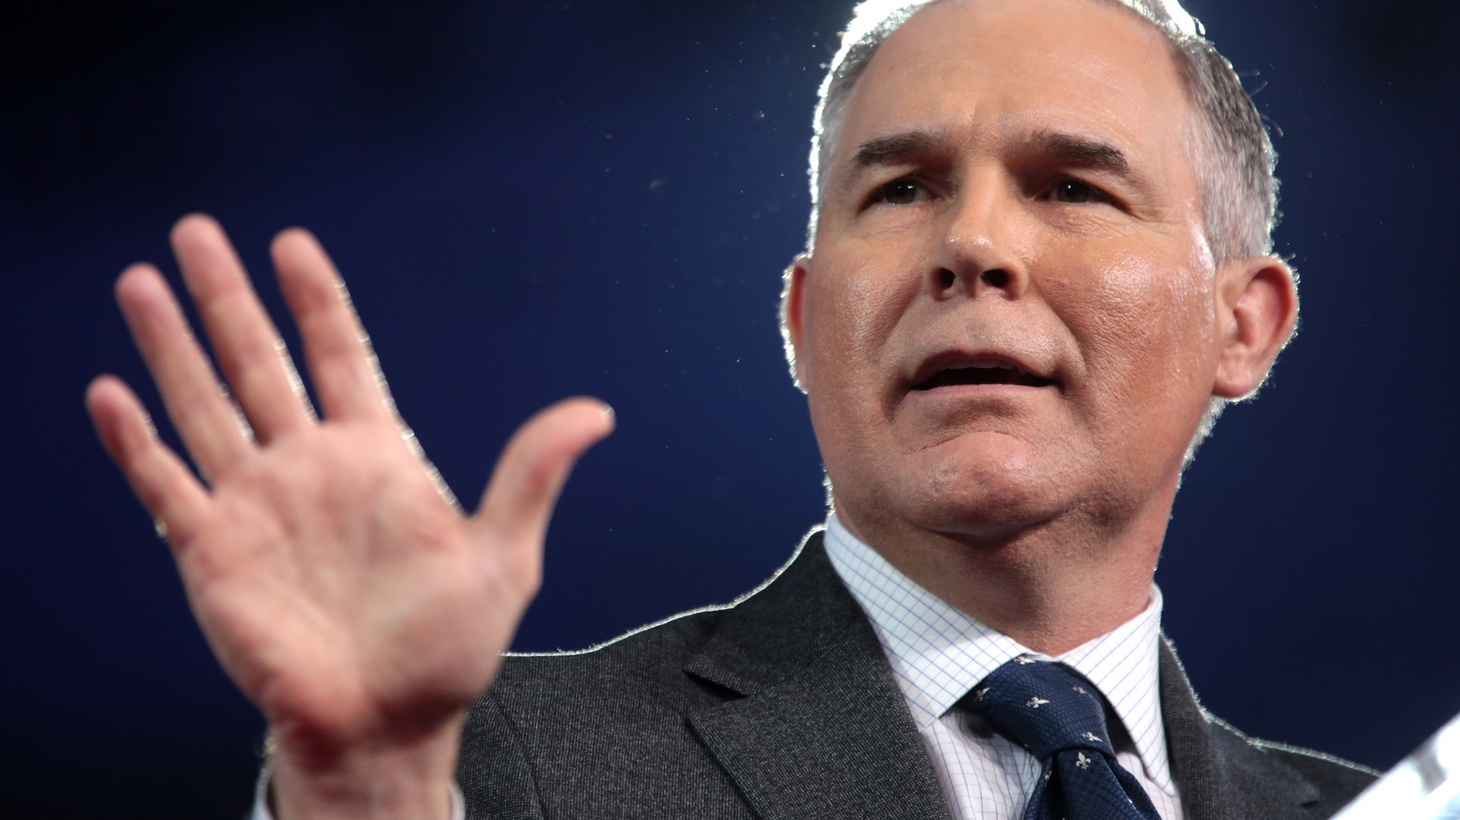 EPA Administrator Scott Pruitt's job is to protect wetlands. Is that why he can't convince anyone he's draining the swamp?